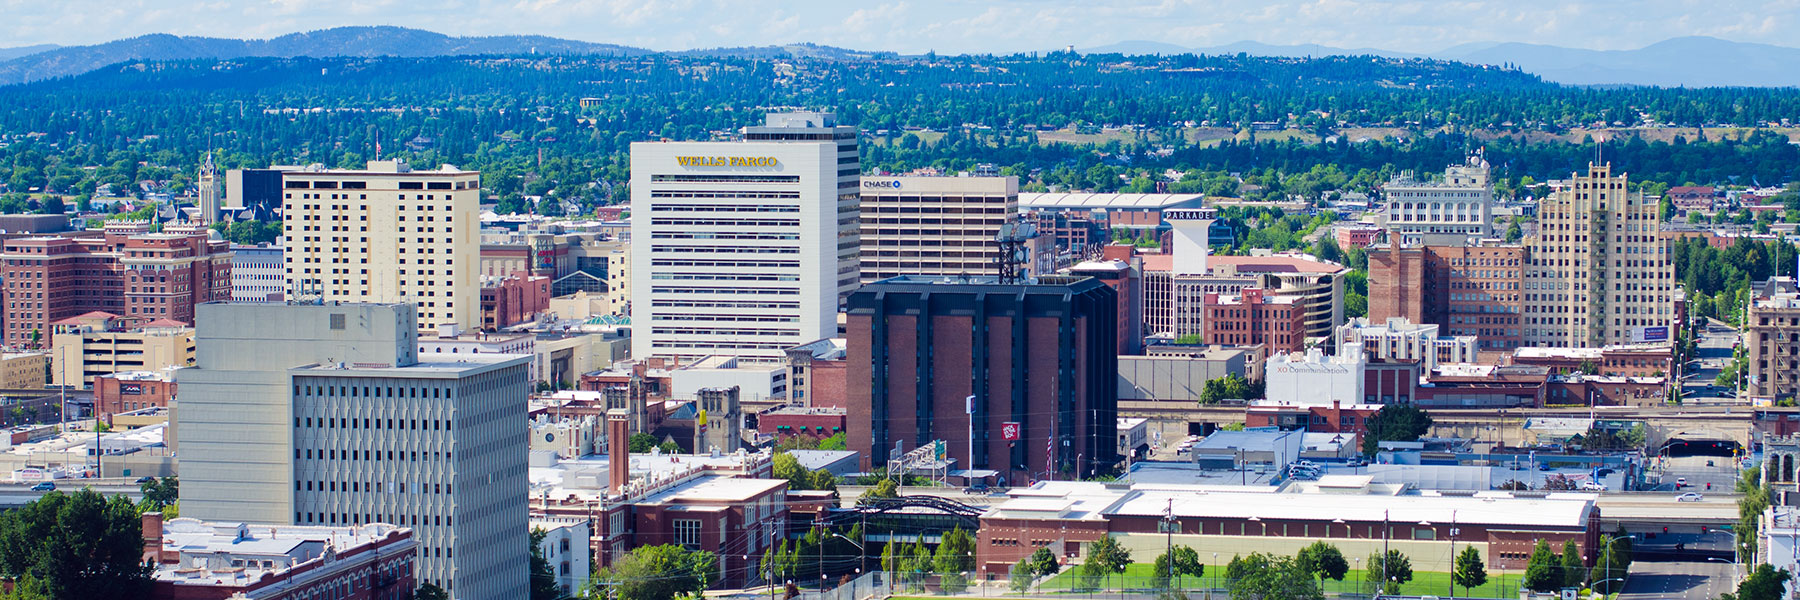 A wide view of the downtown Spokane skyline during the day.